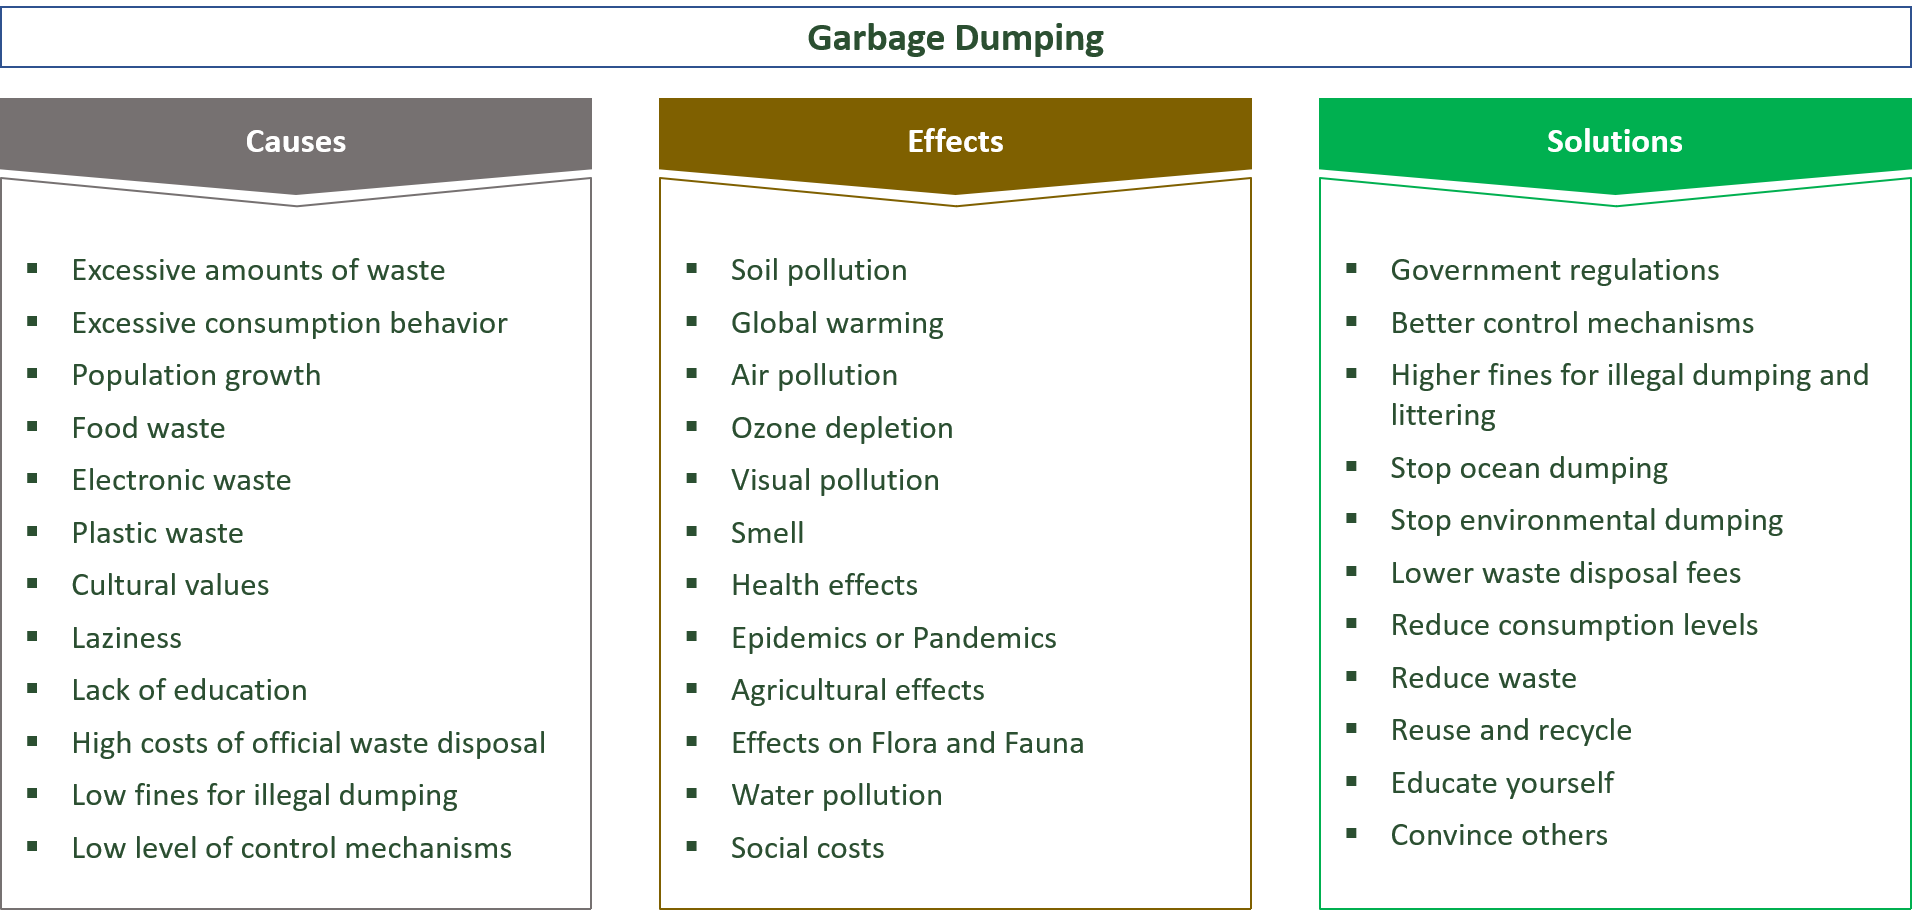 types, causes, effects, solutions for waste dumping